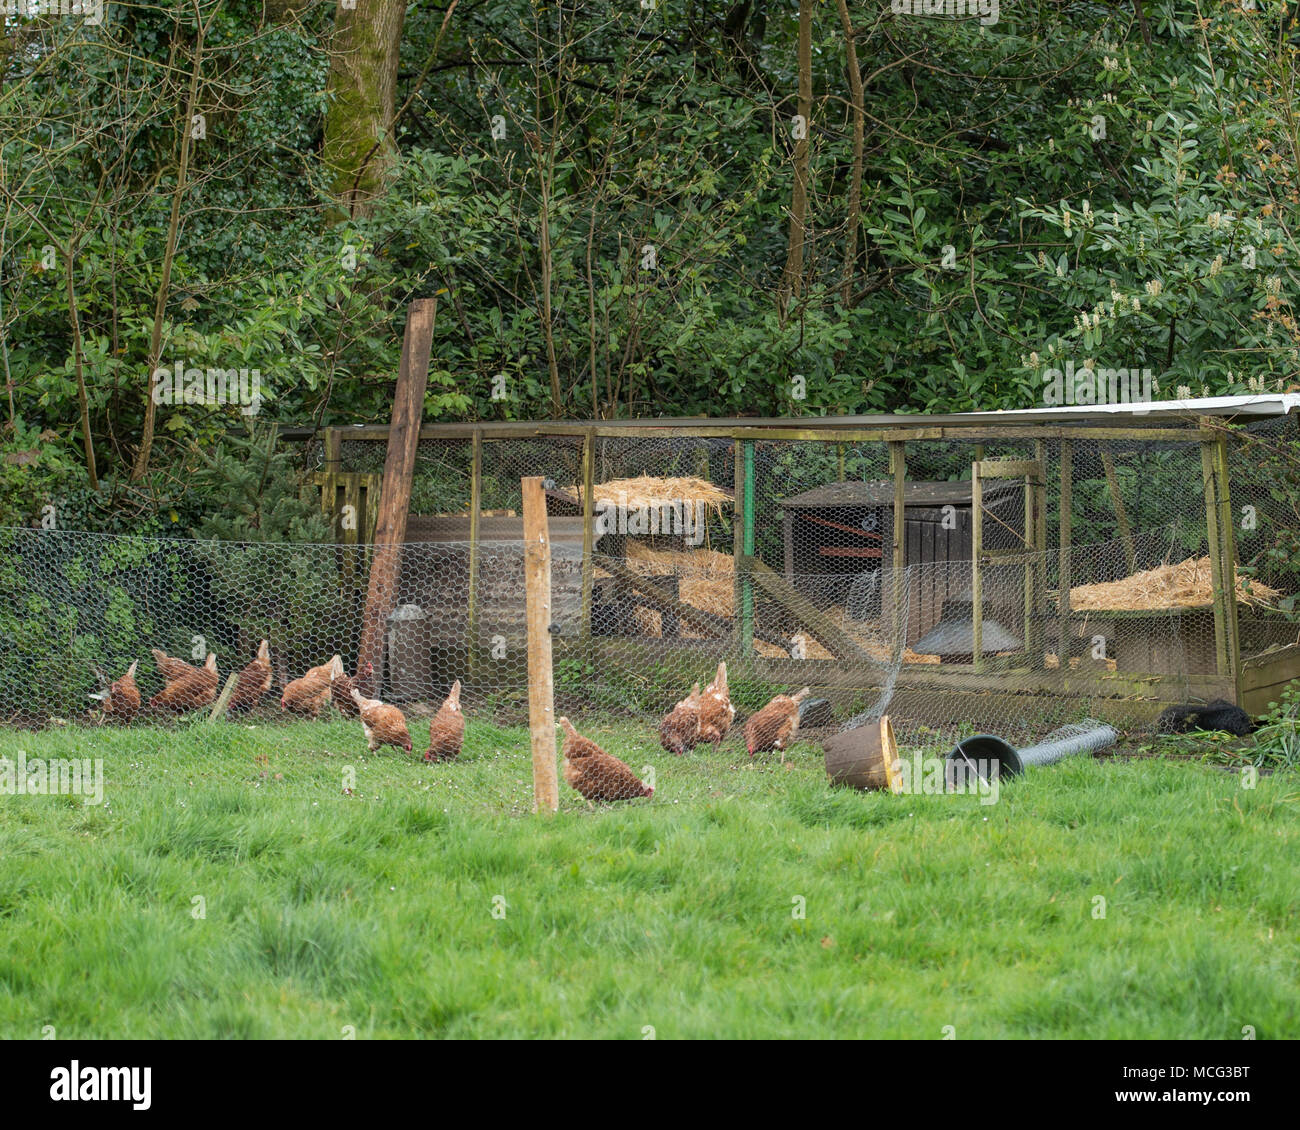 chickens in a run on smallholding - Stock Image